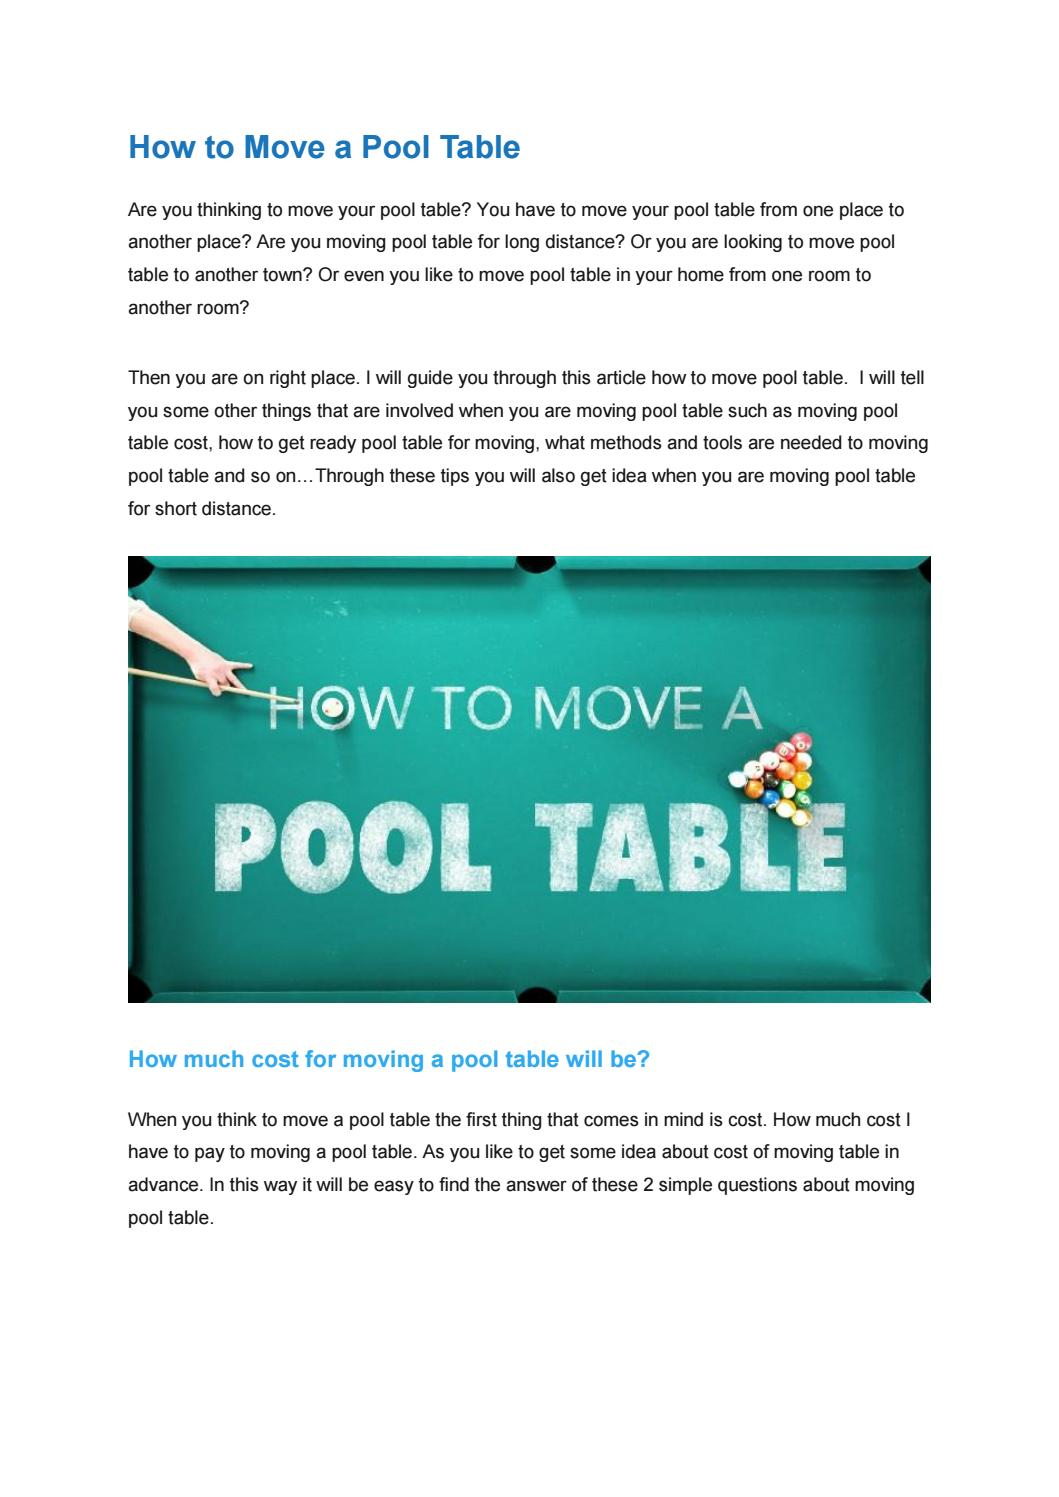 How To Move A Pool Table By Emmavictoria Issuu - What does it cost to move a pool table